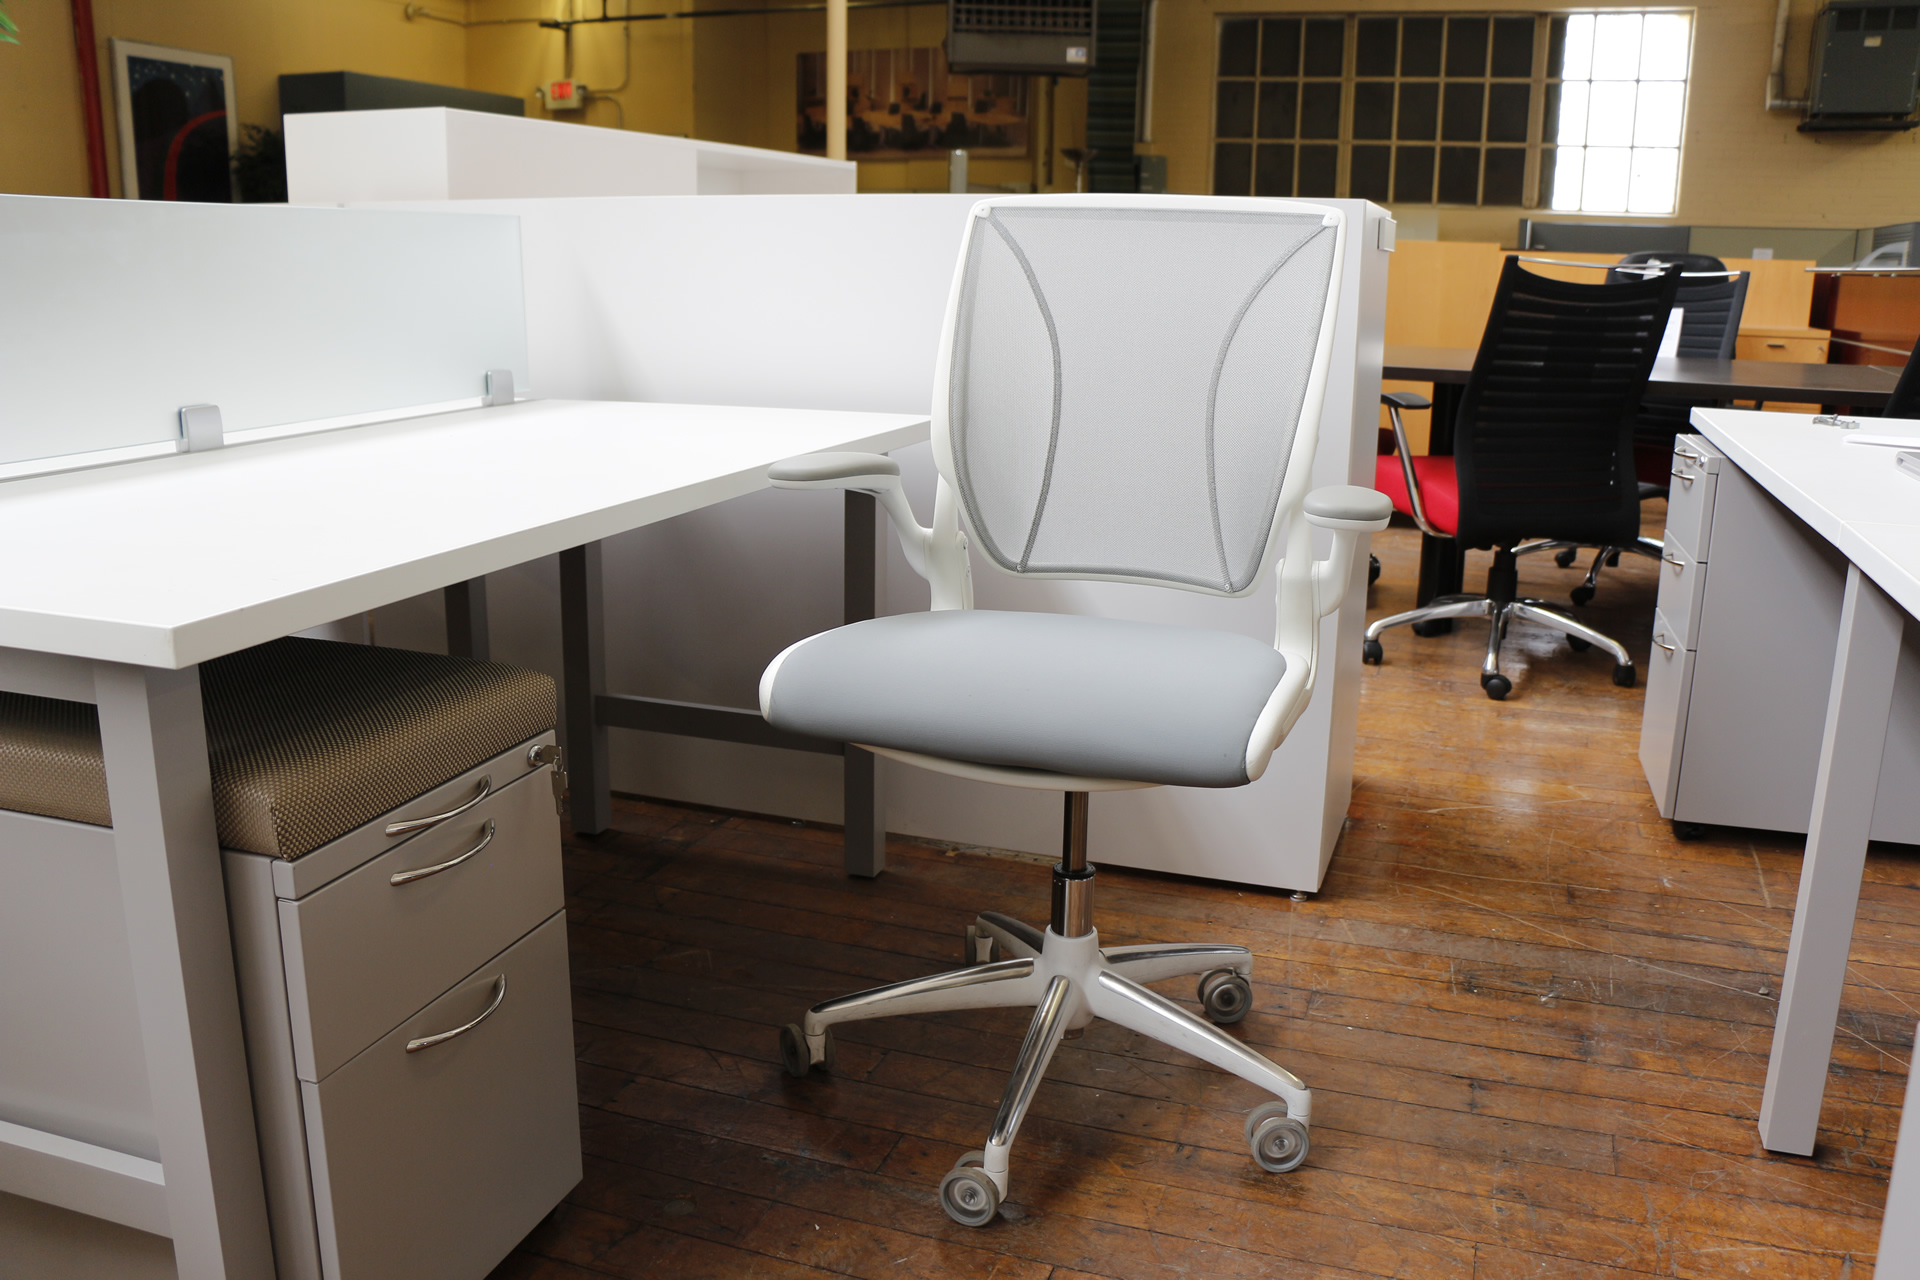 peartreeofficefurniture_peartreeofficefurniture_mg_5107.jpg